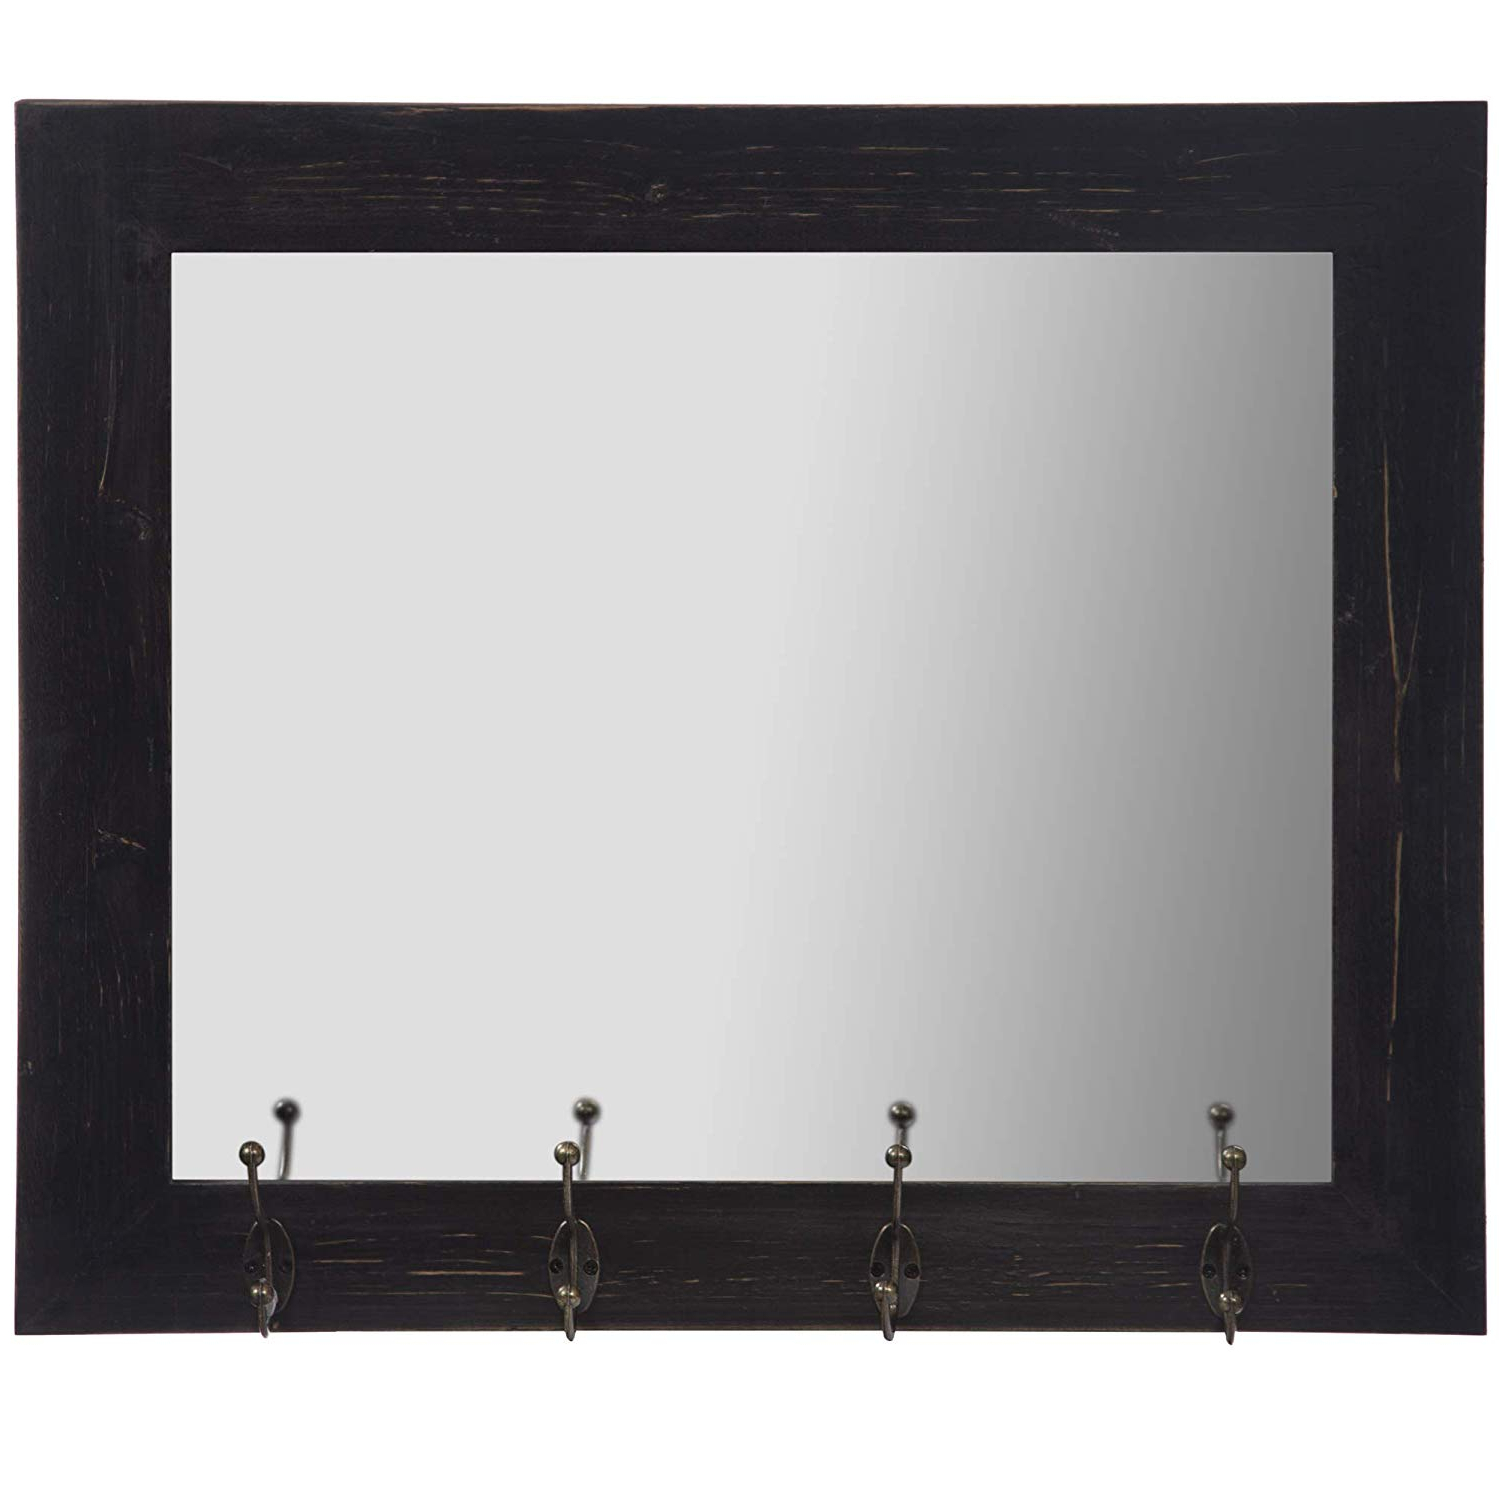 Everly Hart Collection Rustic Black Entryway Wall Mount Hooks Mirrors For Well Known White Wall Mirrors With Hooks (View 10 of 20)